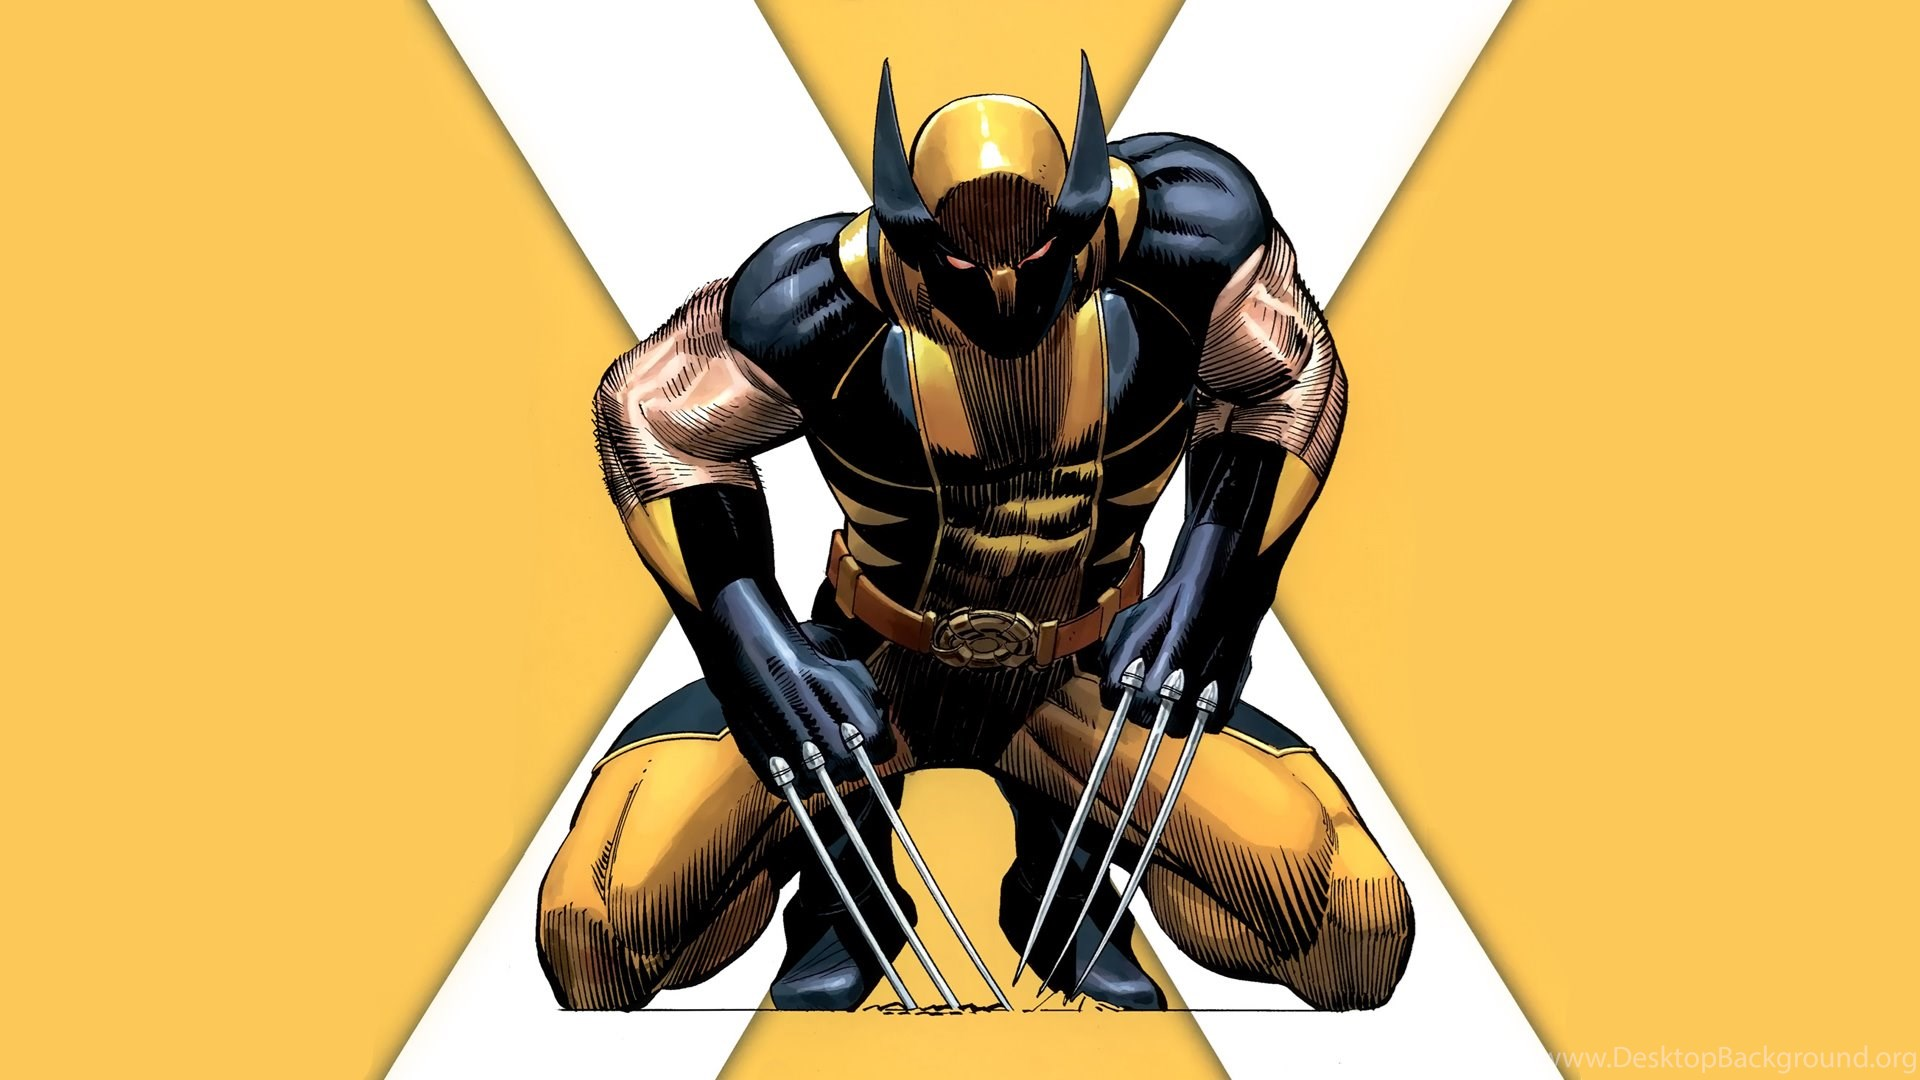 Top Wallpaper Marvel Wolverine - 622054_x-men-wolverine-yellow-marvel-comics-cartoon-hd-wallpapers_1920x1080_h  2018_96815.jpg